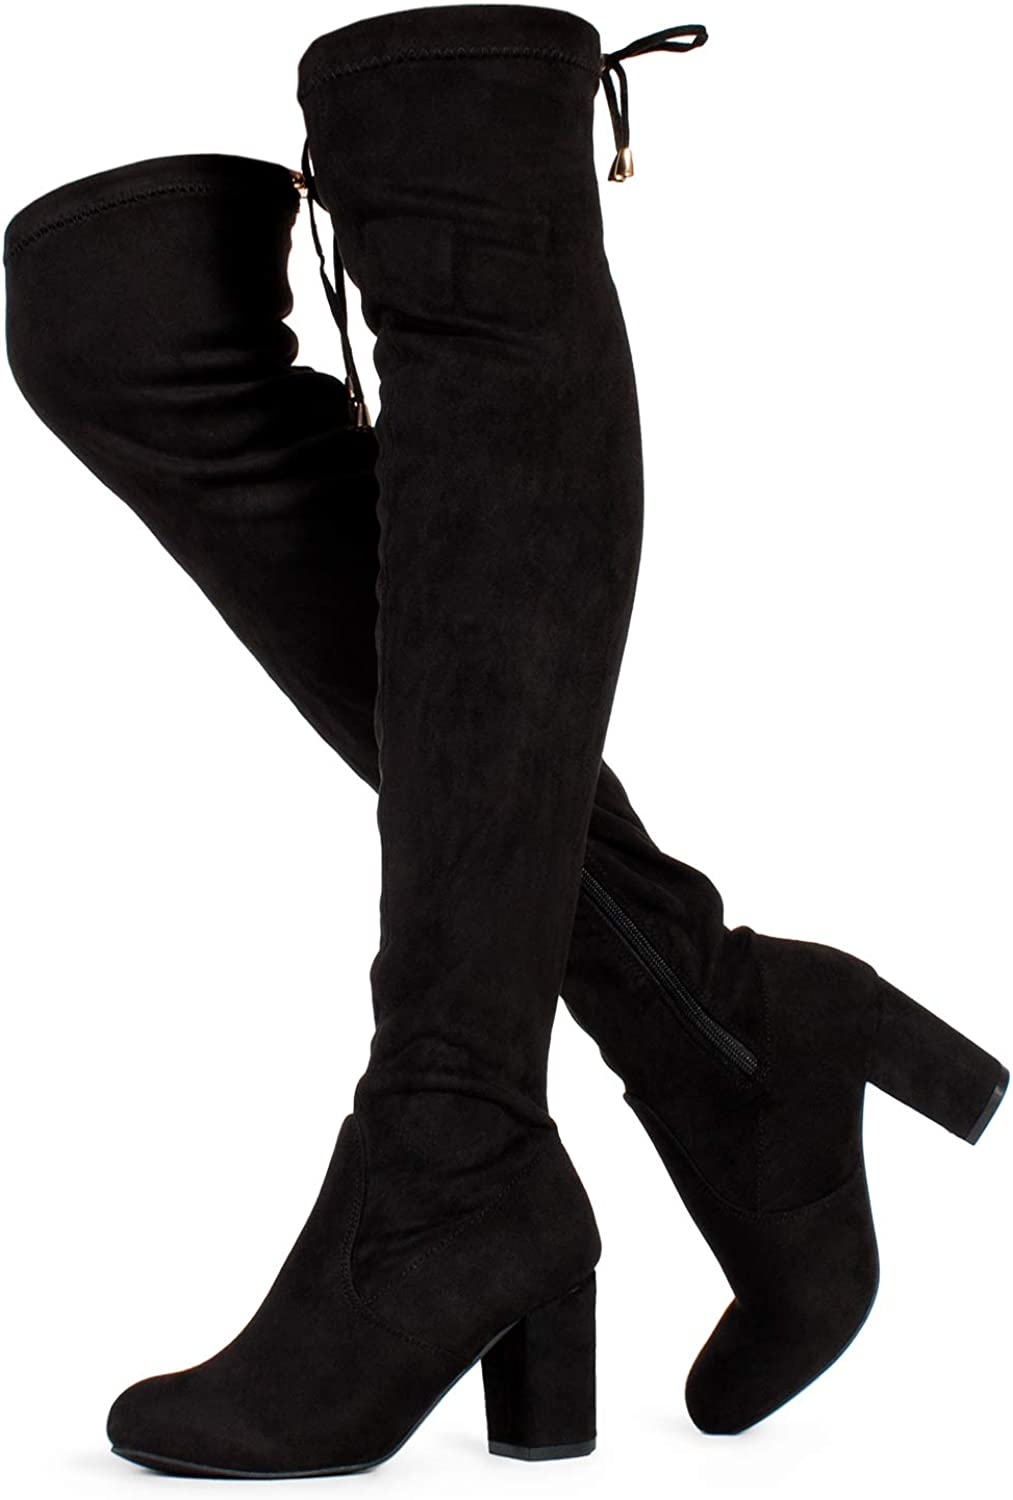 | RF ROOM OF FASHION Chateau Women's Over The Knee Block Heel Stretch Boots (Medium Calf) | Over-the-Knee